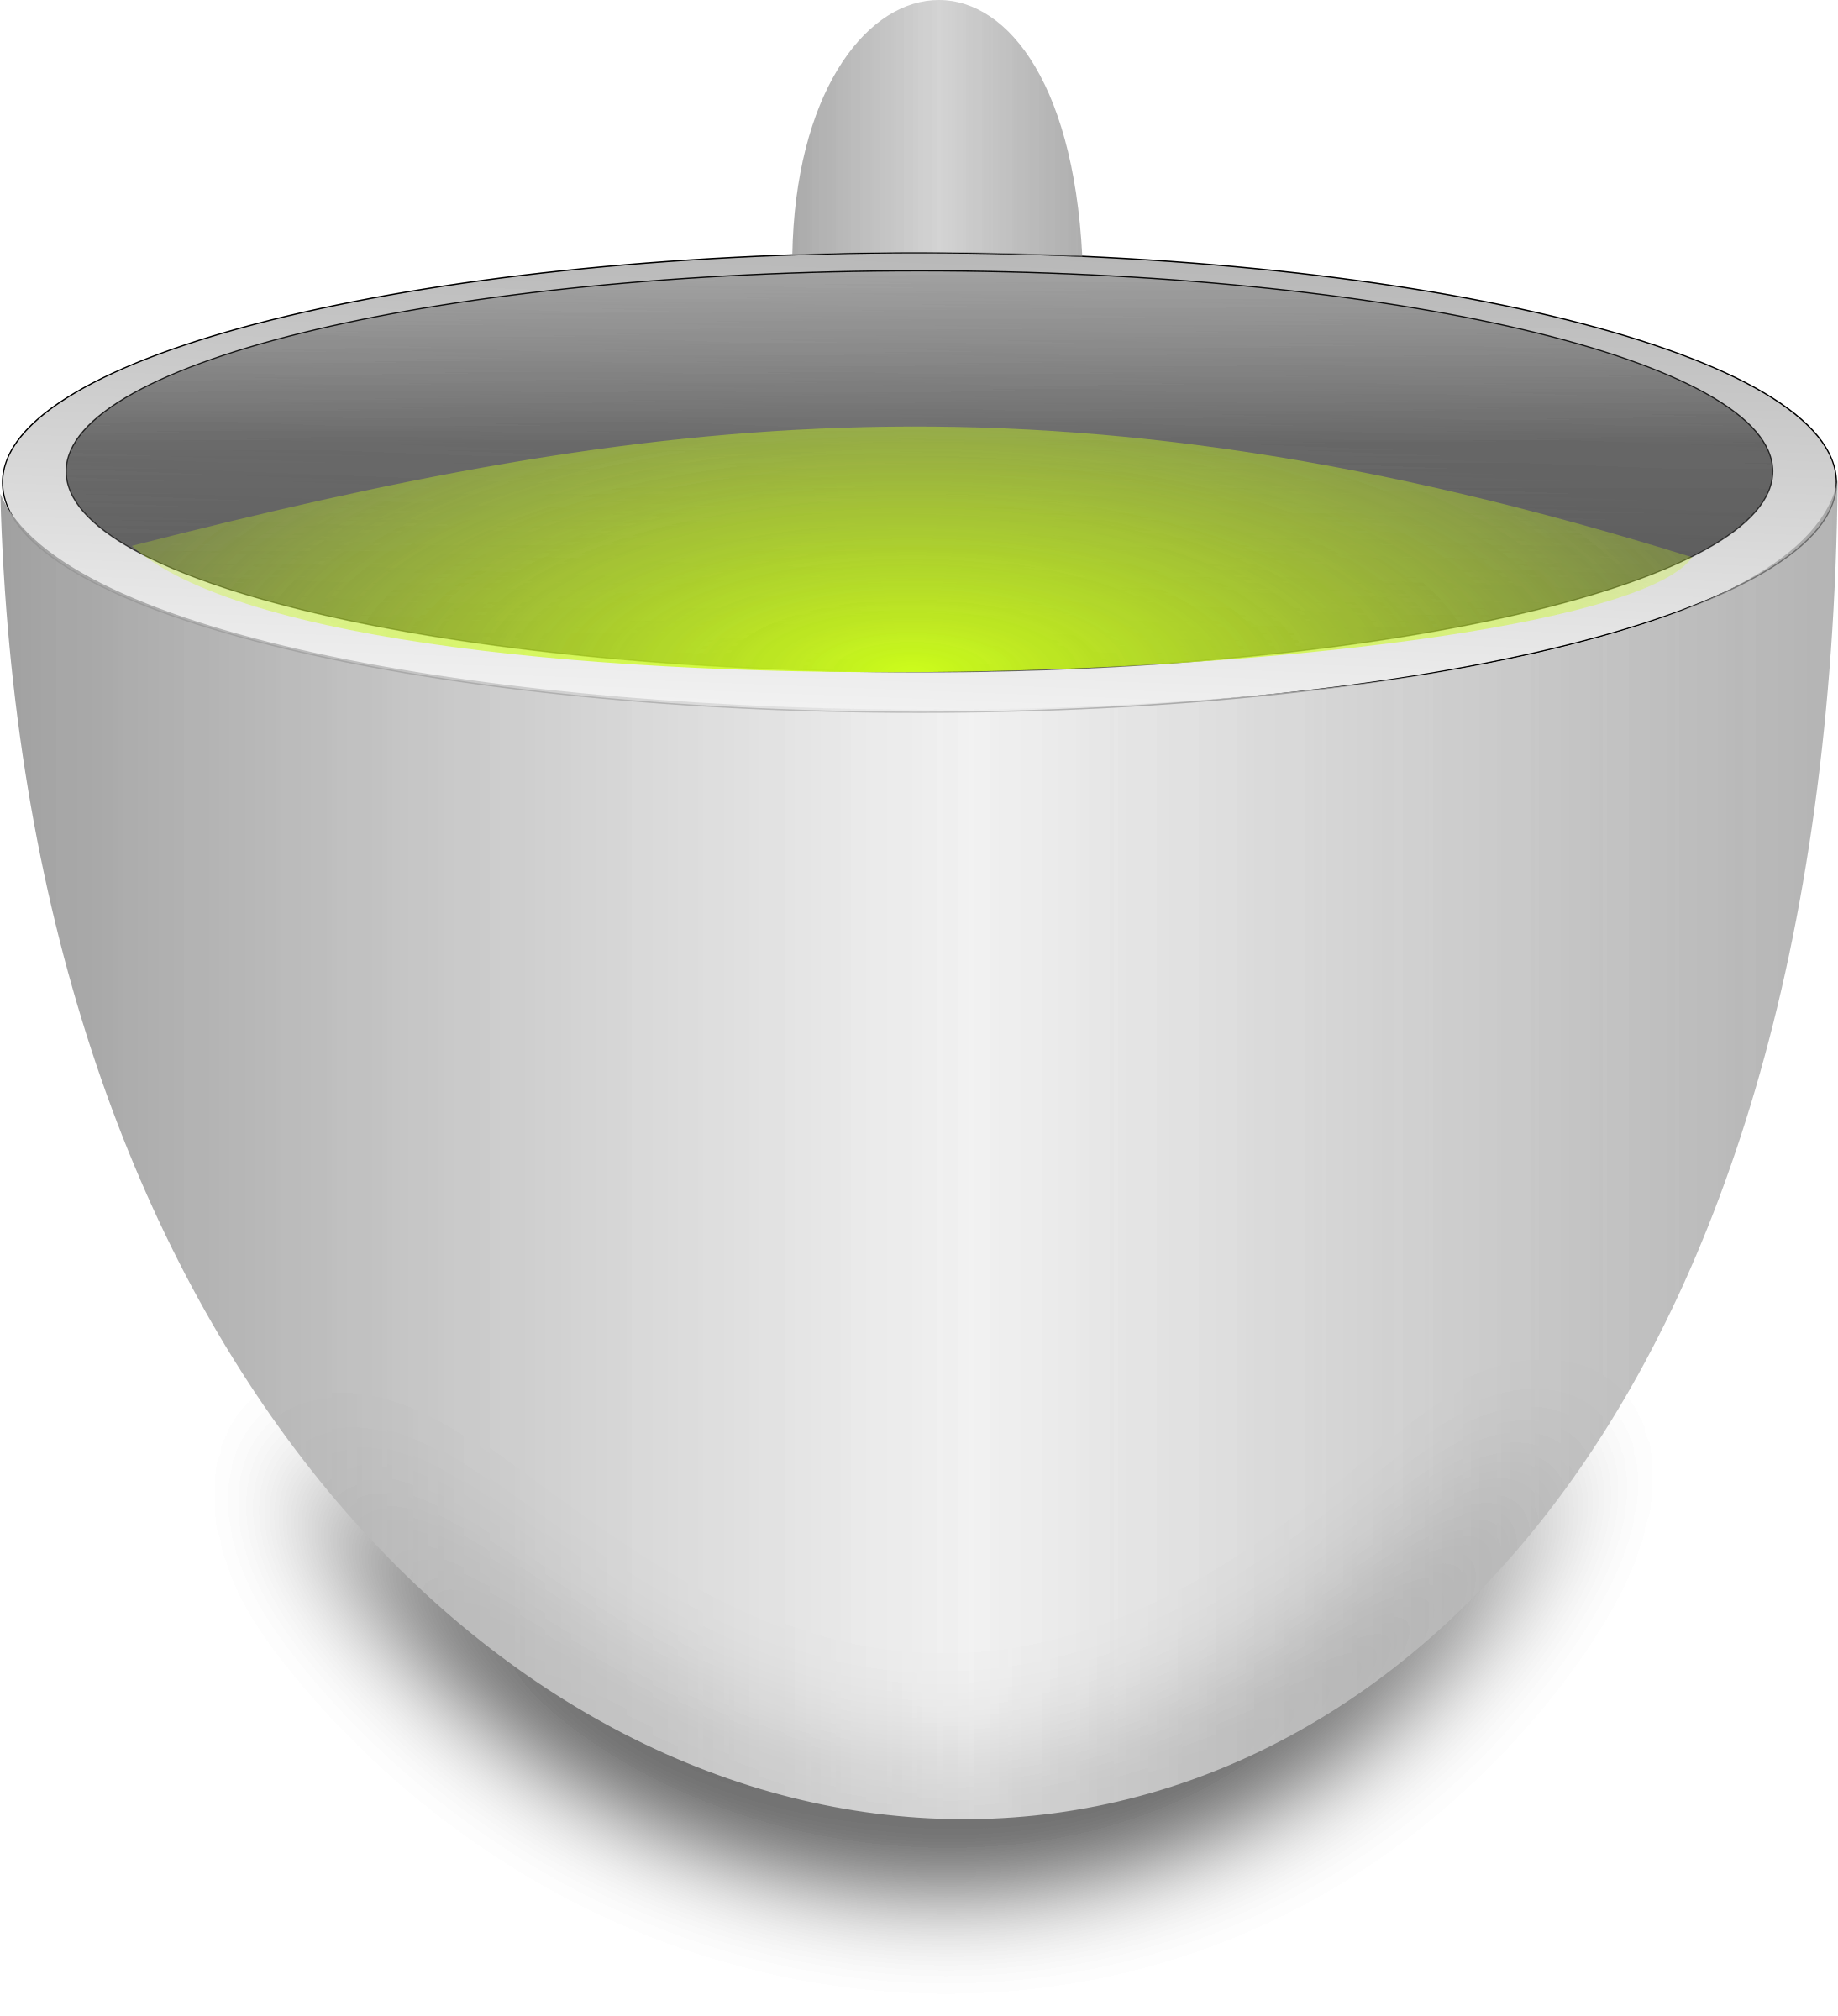 Cup png images free. Clipart coffee green